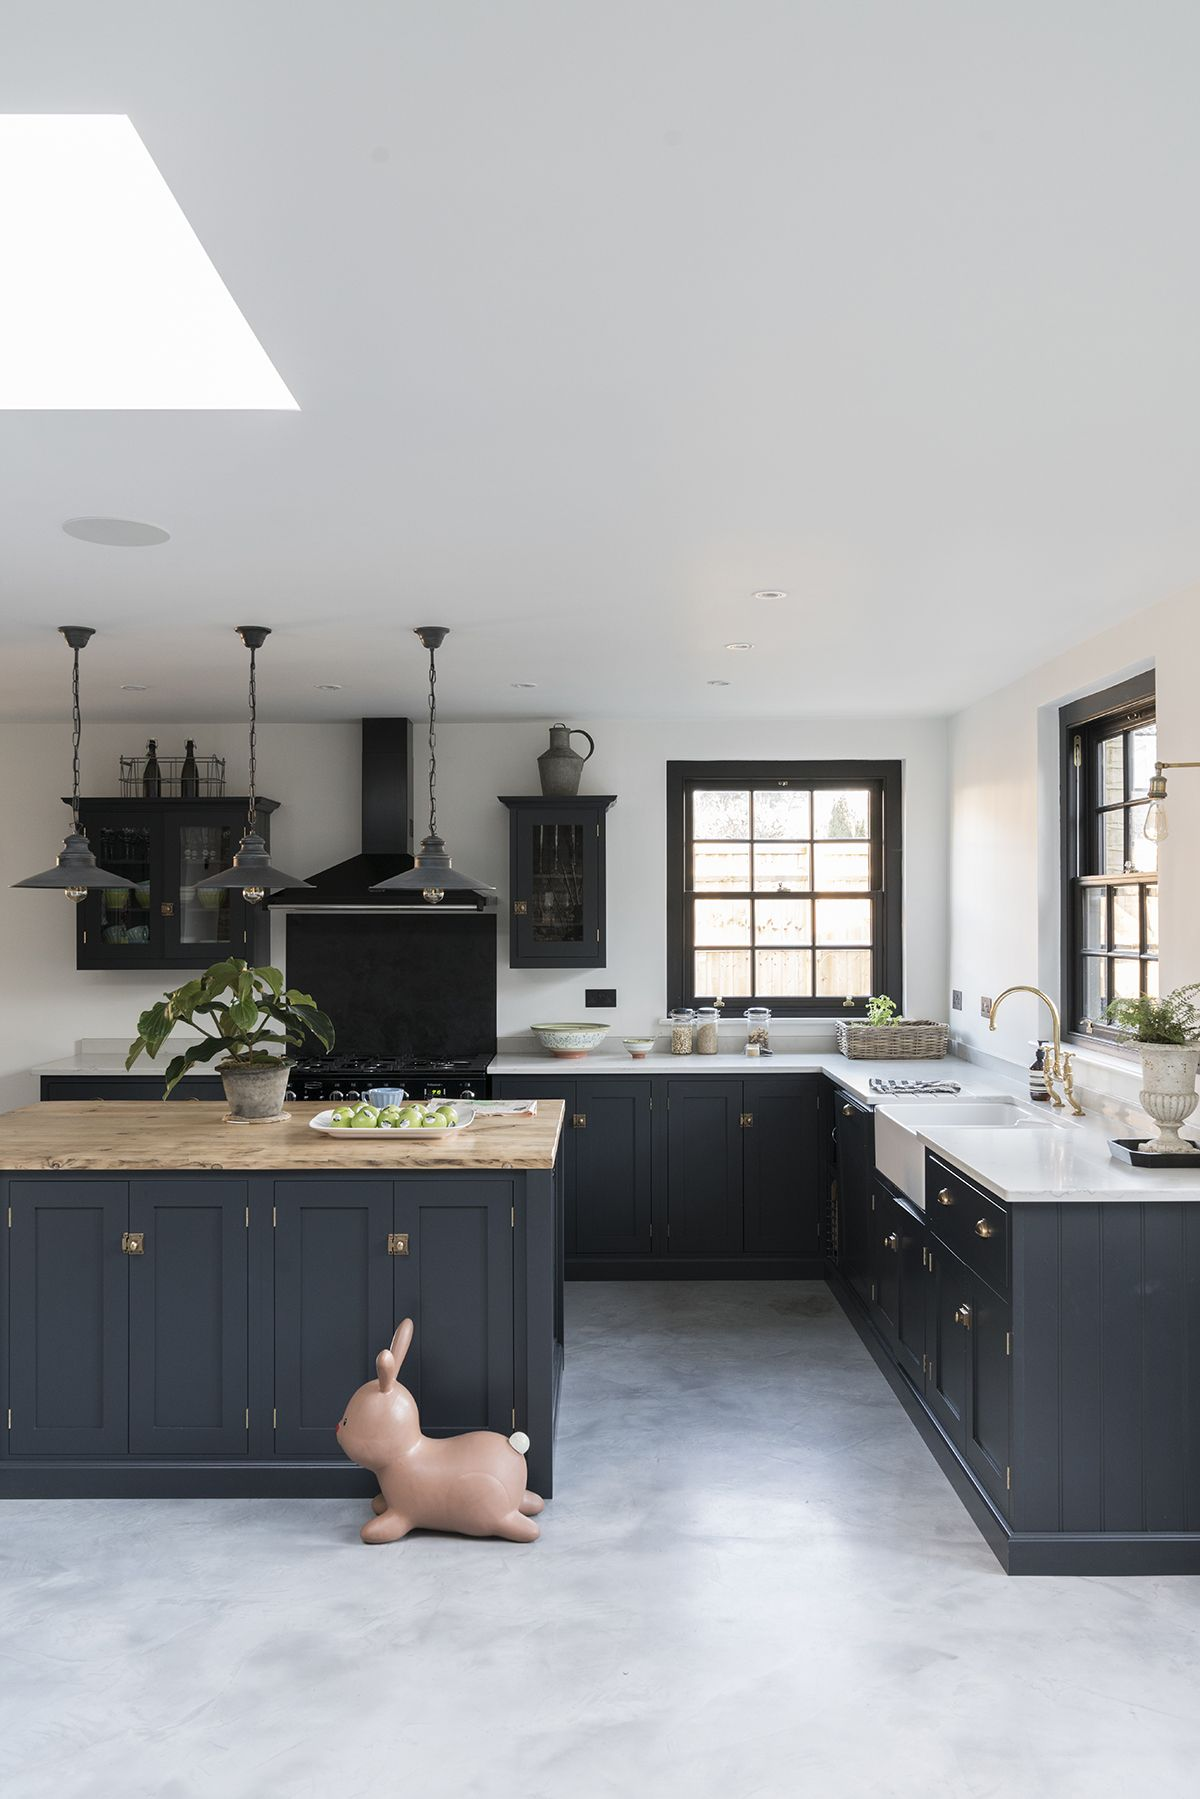 These kitchen ideas will have you planning a renovation